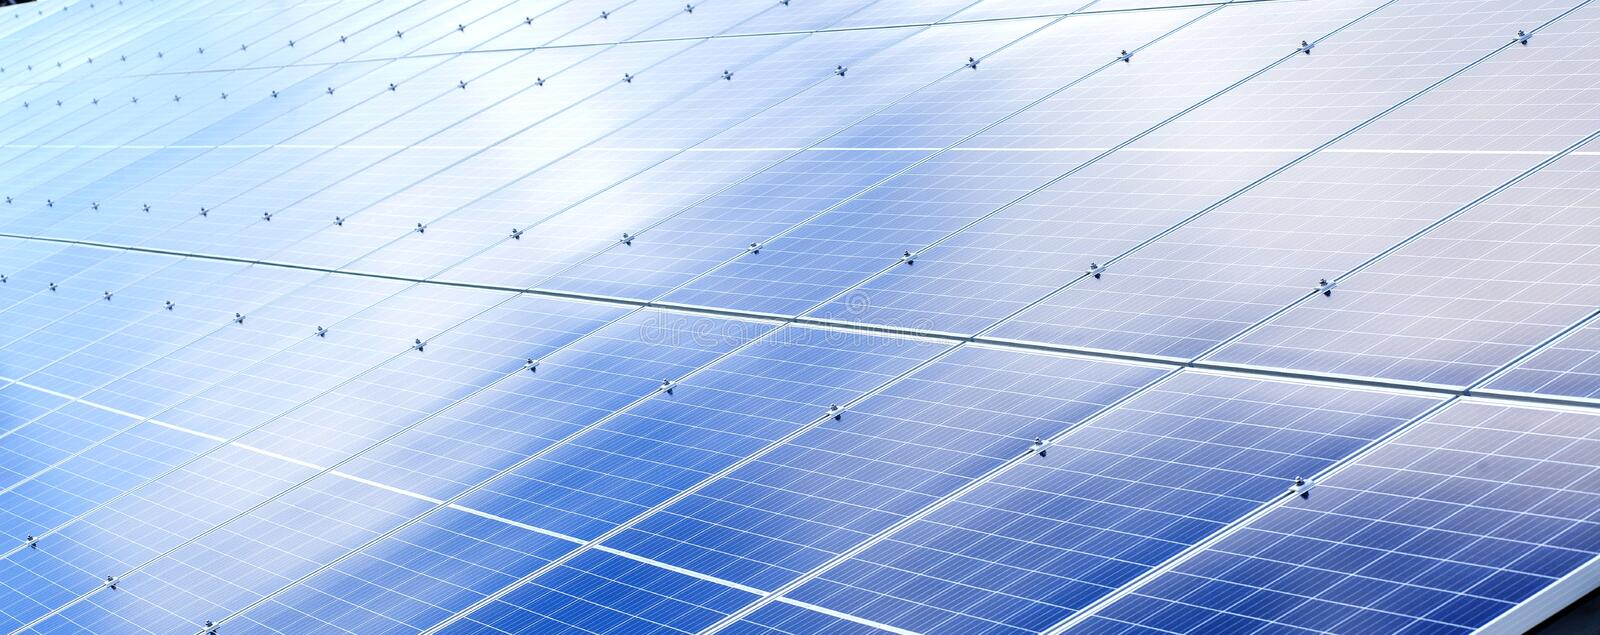 Solar panels background. Photovoltaic renewable energy source royalty free stock photography